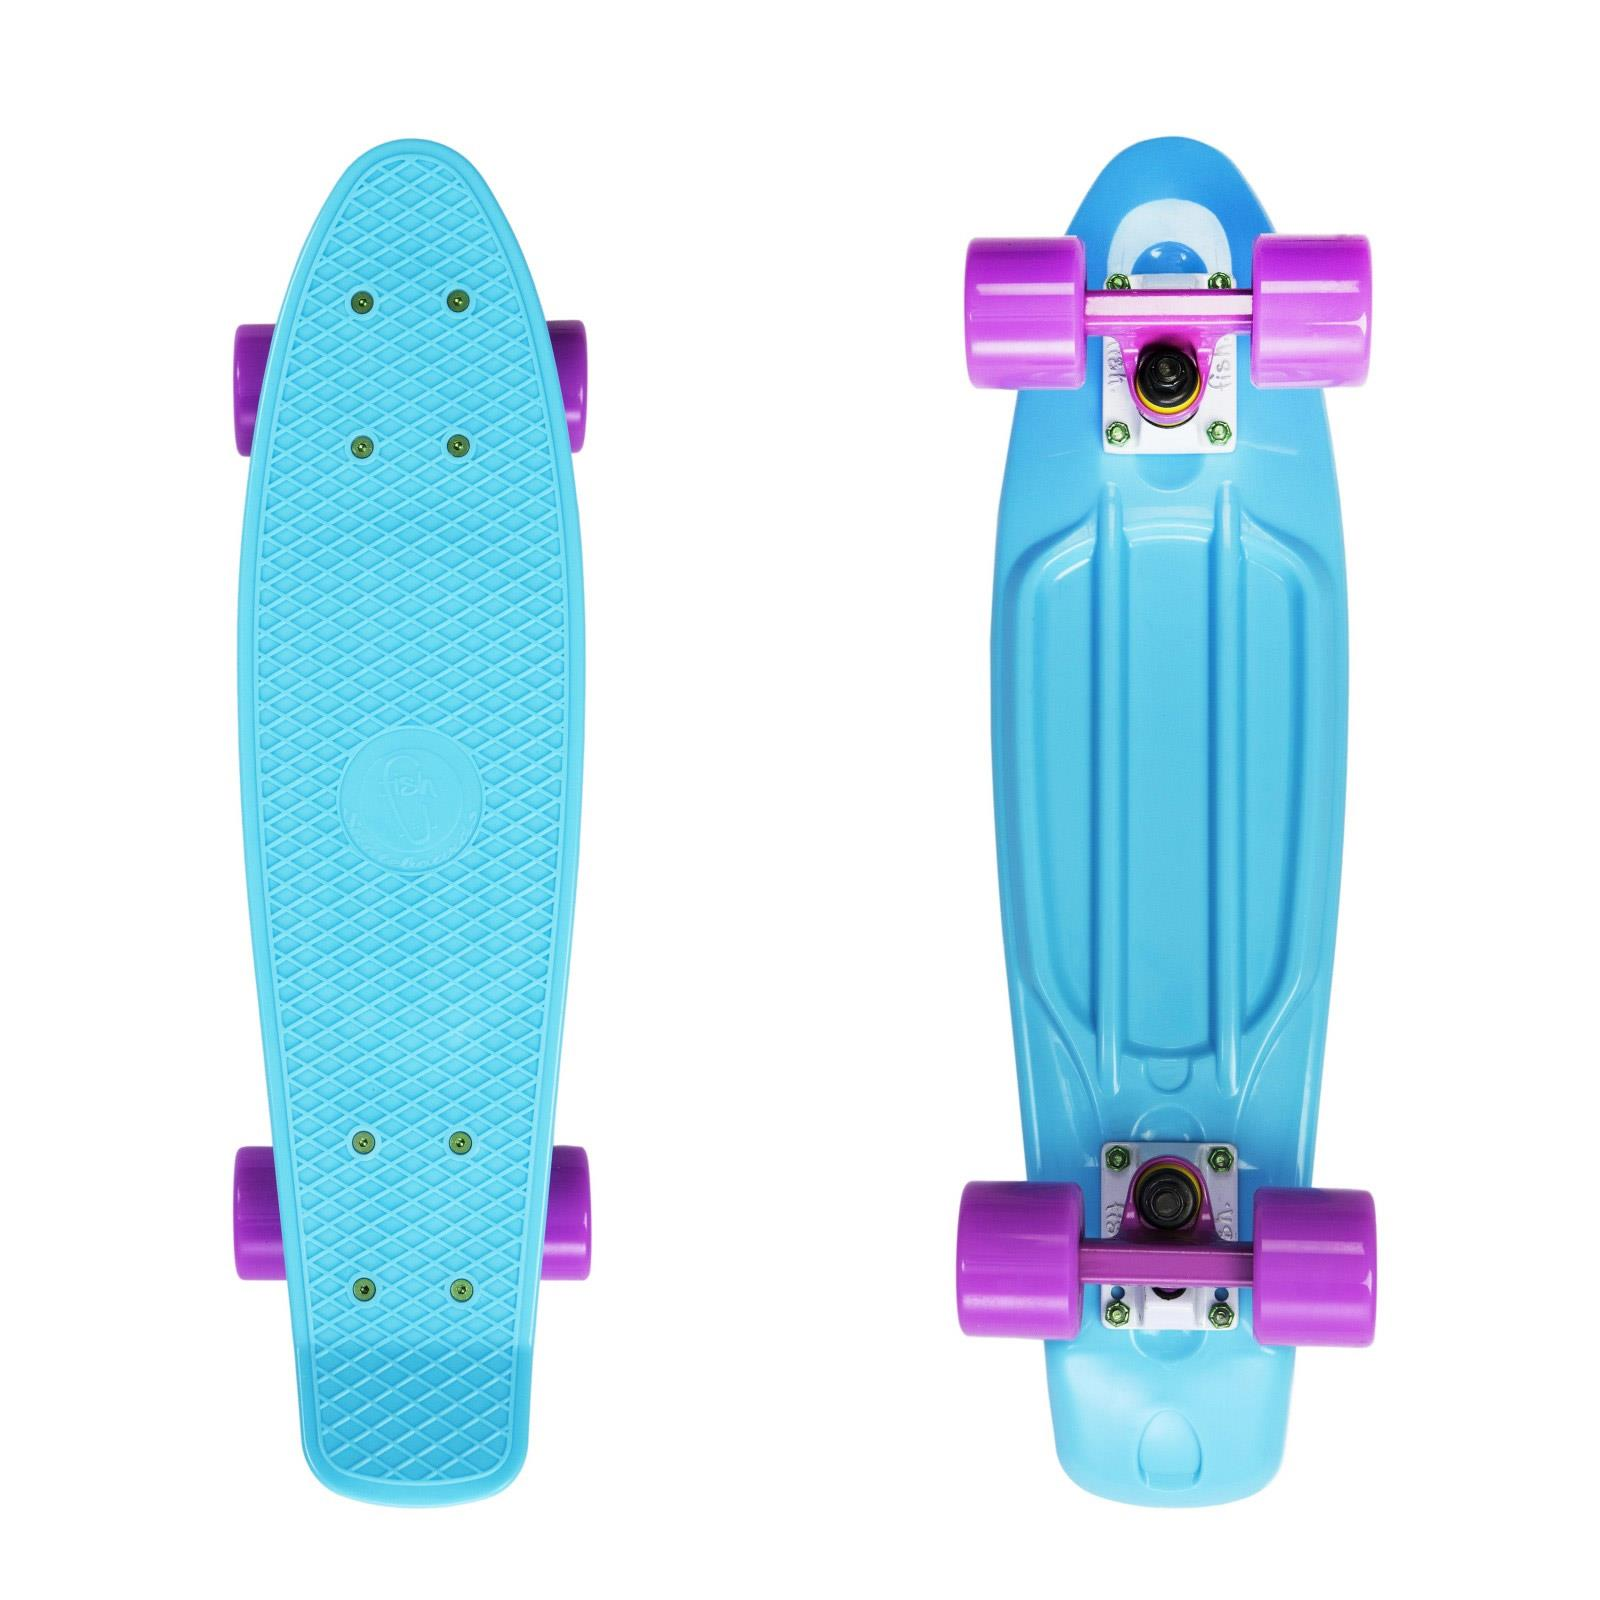 Deskorolka Fishskateboards FISHKA®